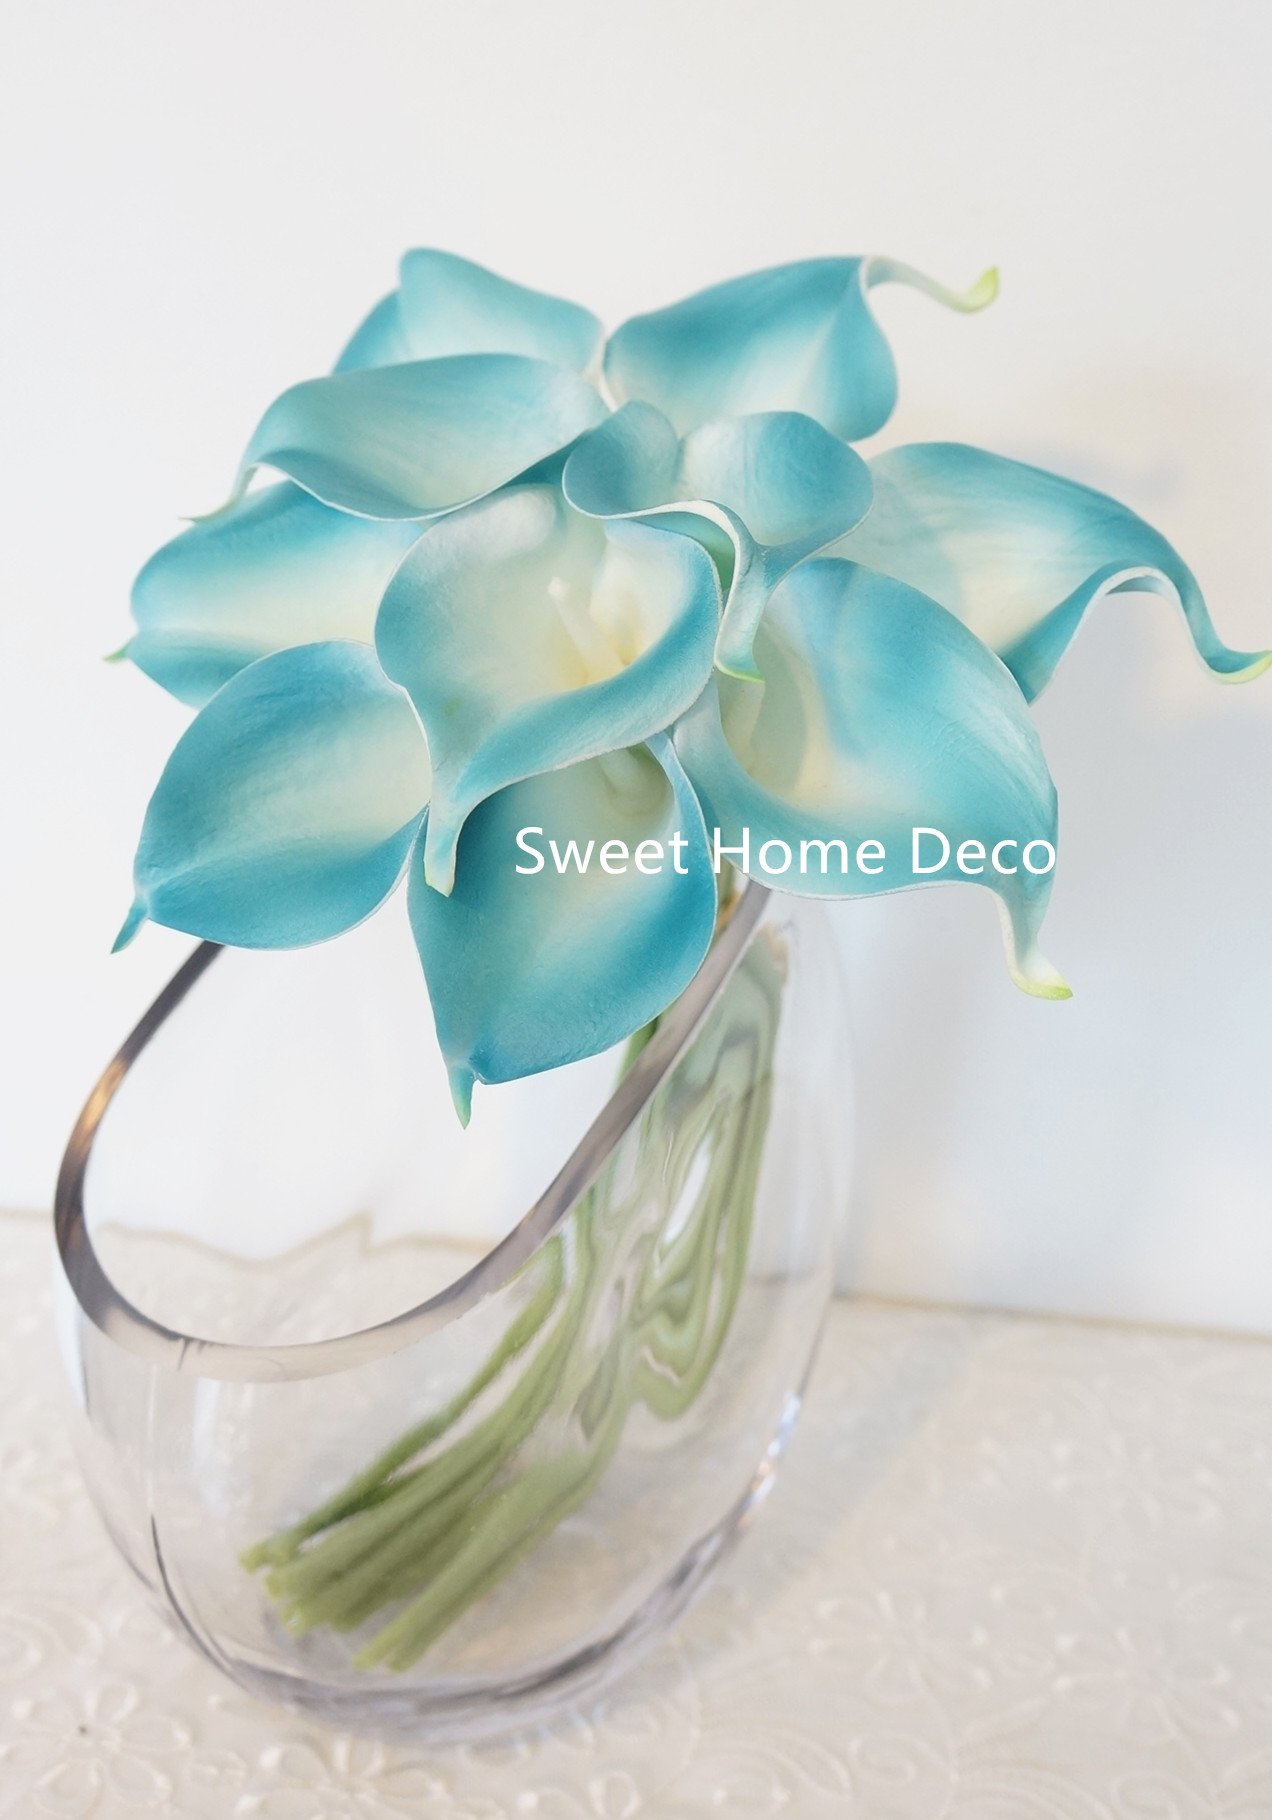 Sweet-Home-Deco-Latex-Real-Touch-15-Artificial-Calla-Lily-10-Stems-Flower-Bouquet-for-HomeWedding-Aqua